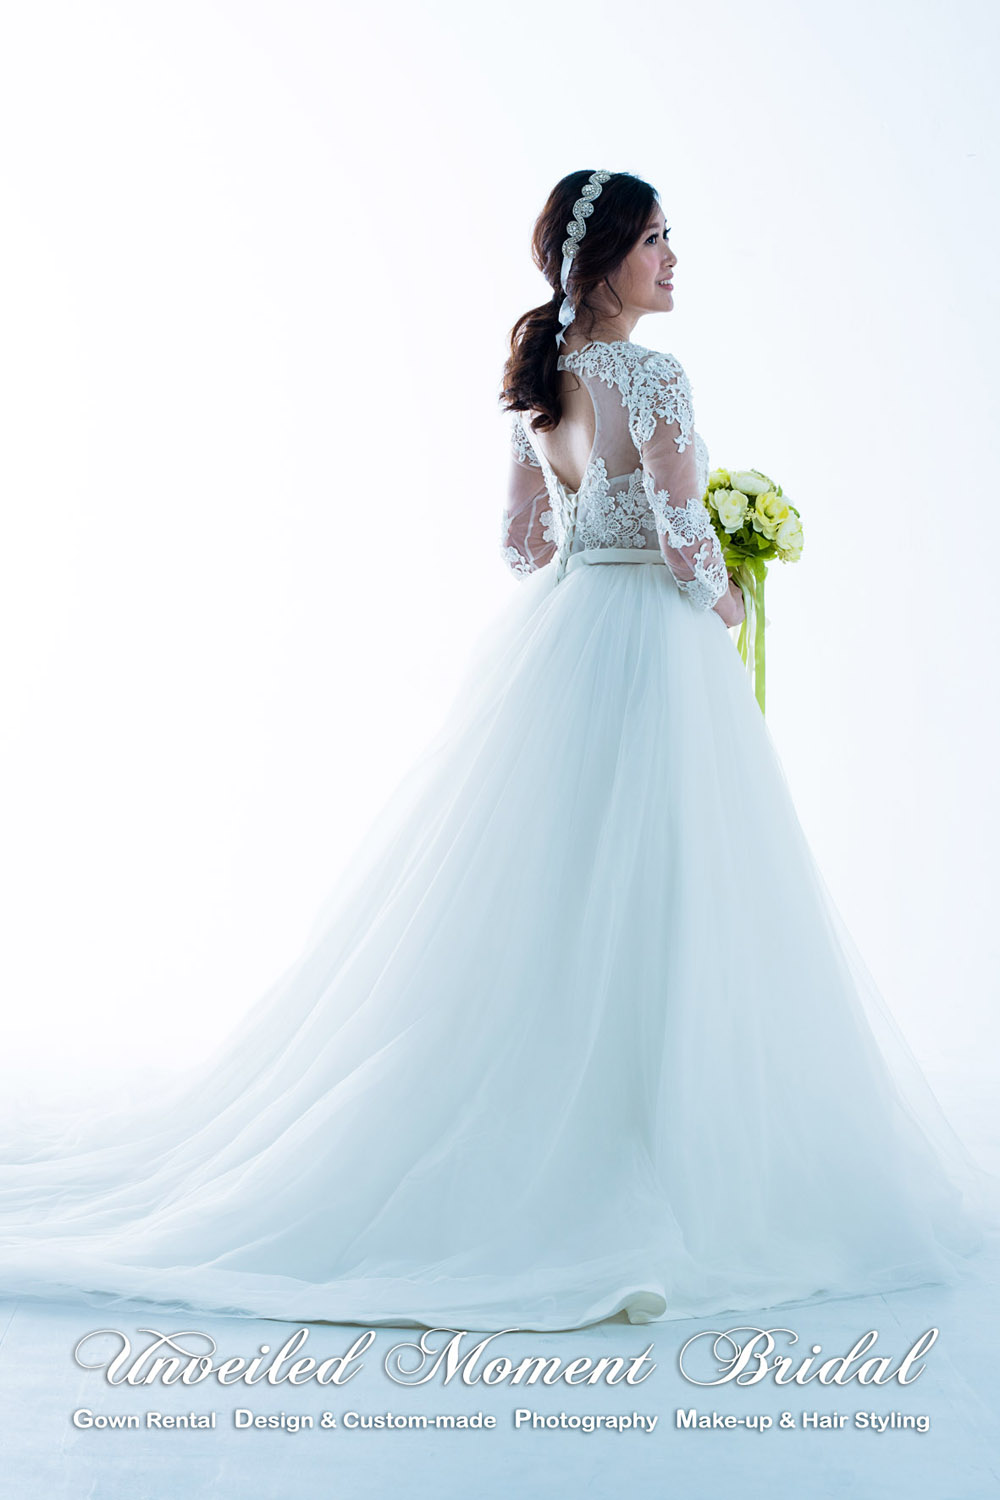 See-through long sleeved wedding gown with a decorative lace bodice, an open back, and a sweep train 透視長袖, 蕾絲釘珠, 美背, 長拖尾婚紗